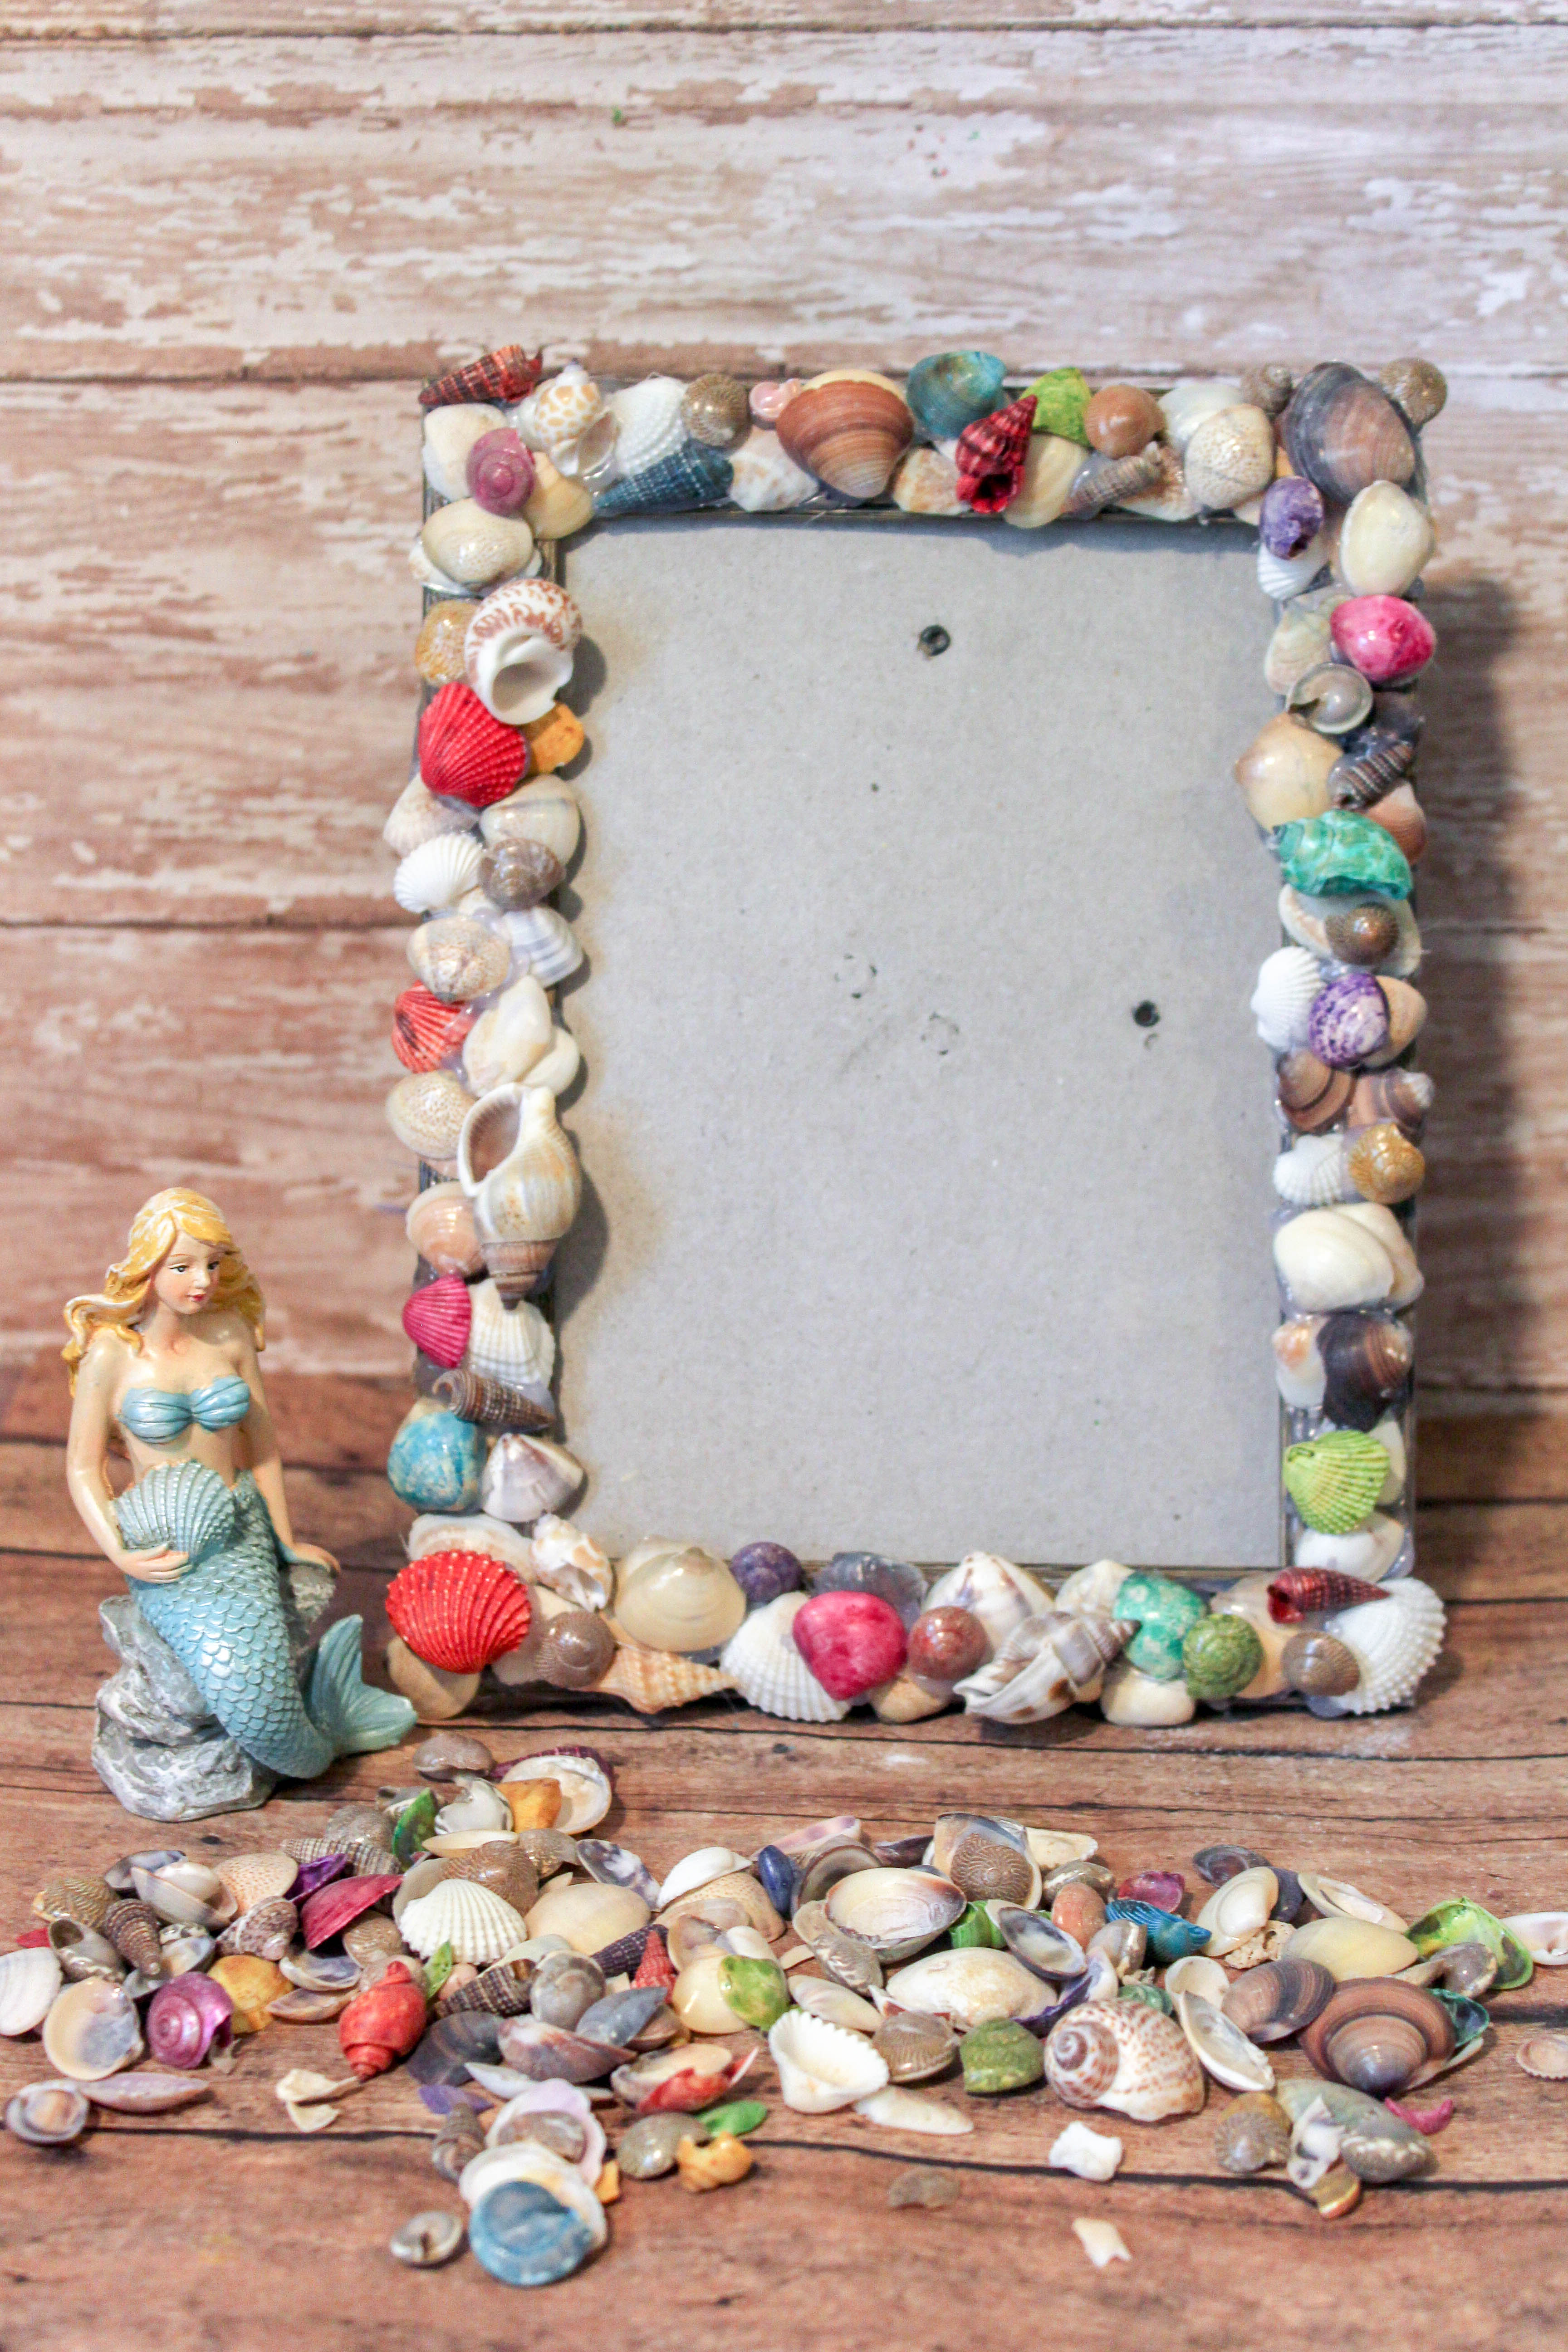 Visited the beach recently? Have a lot of shells you collected? Now, what do you do with them? If you are looking for something to do with seashells, make this easy shell frame. A fun and easy shell craft. It is perfect for anyone who loves seashell crafts.